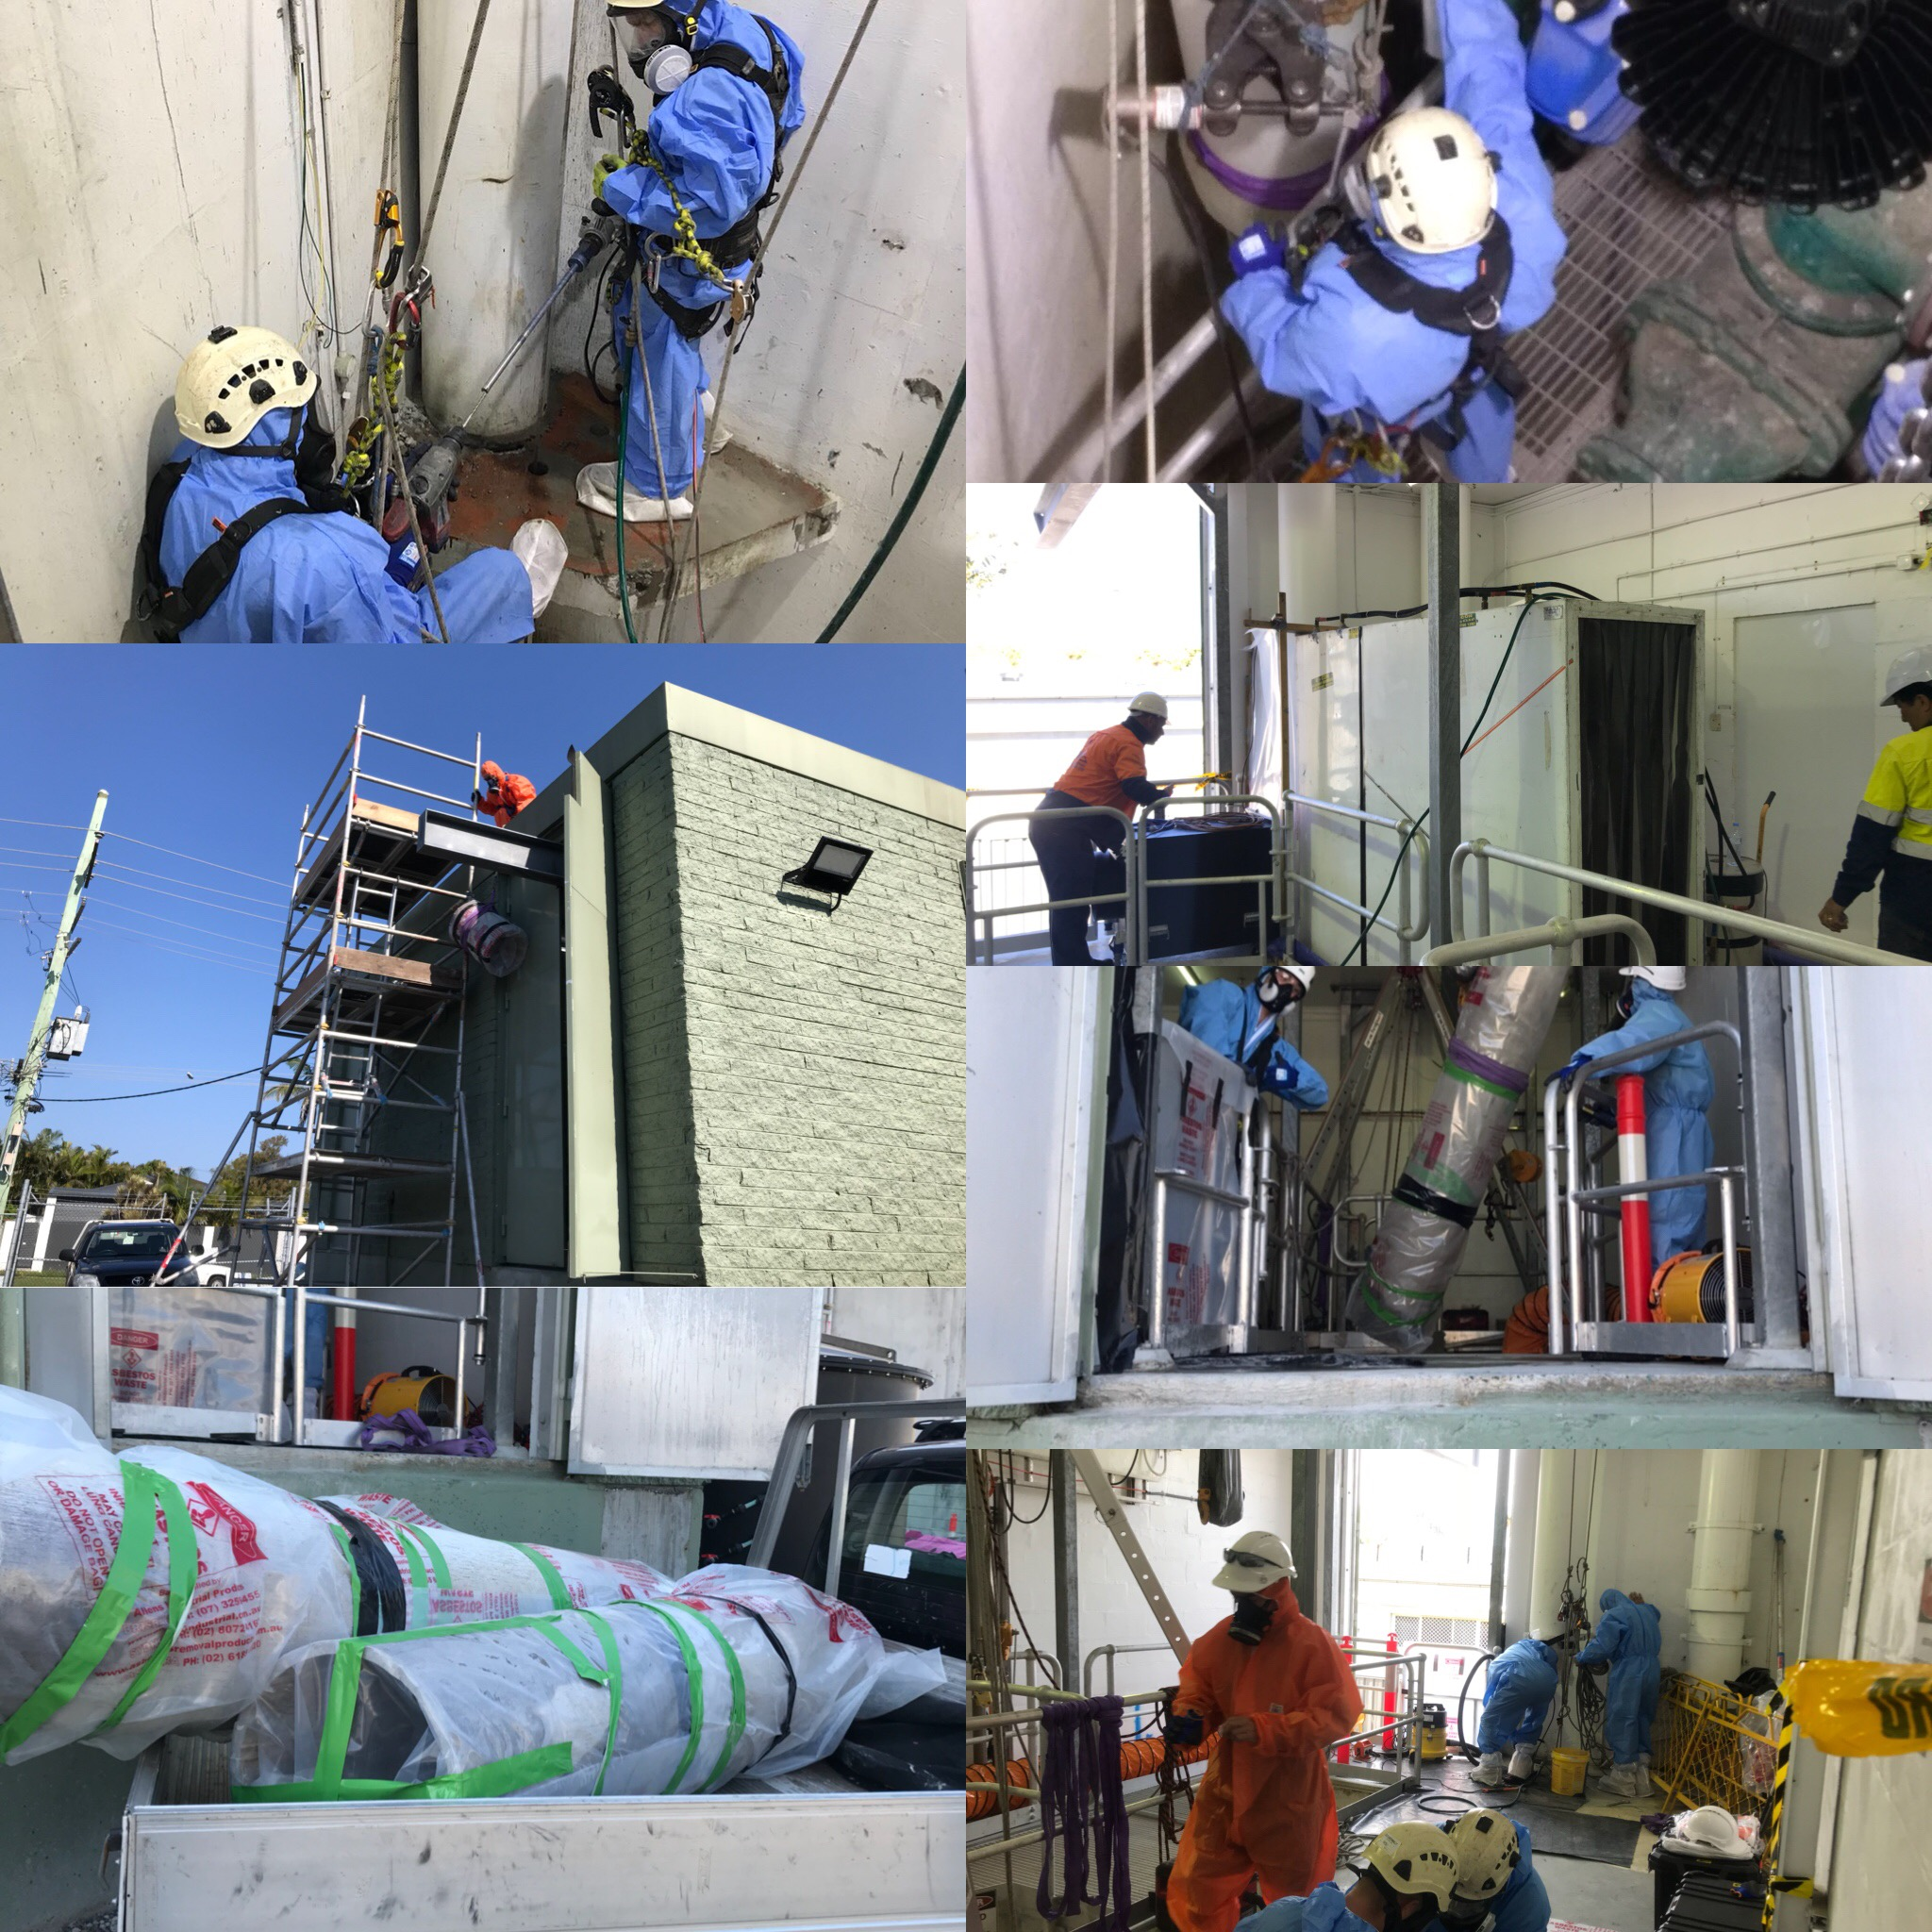 66c452 4e7eb2743c0f4835b543ba0b850e15c4~mv2 d 2048 2048 s 2 - Asbestos Pipe Removal 14 Meters Down a Sewer Well